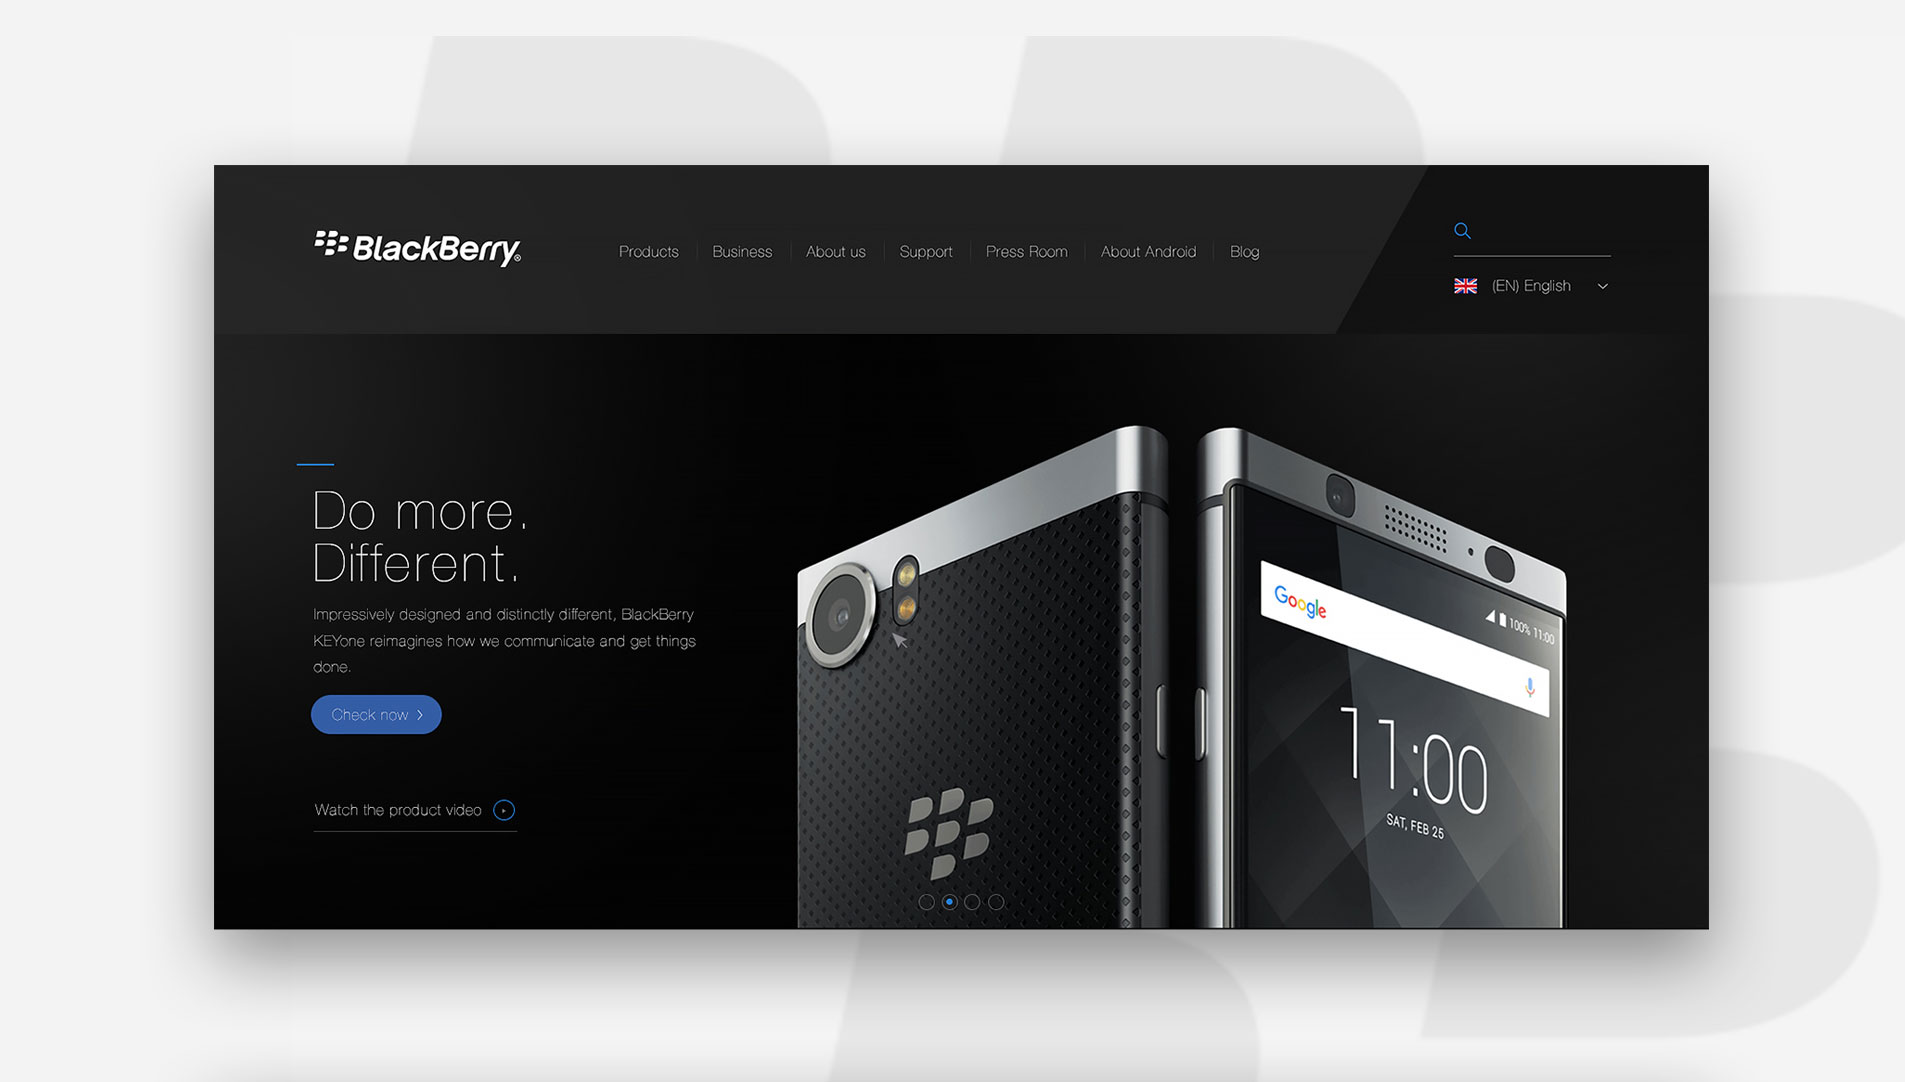 web design hong kong BlackBerry slideshow 01